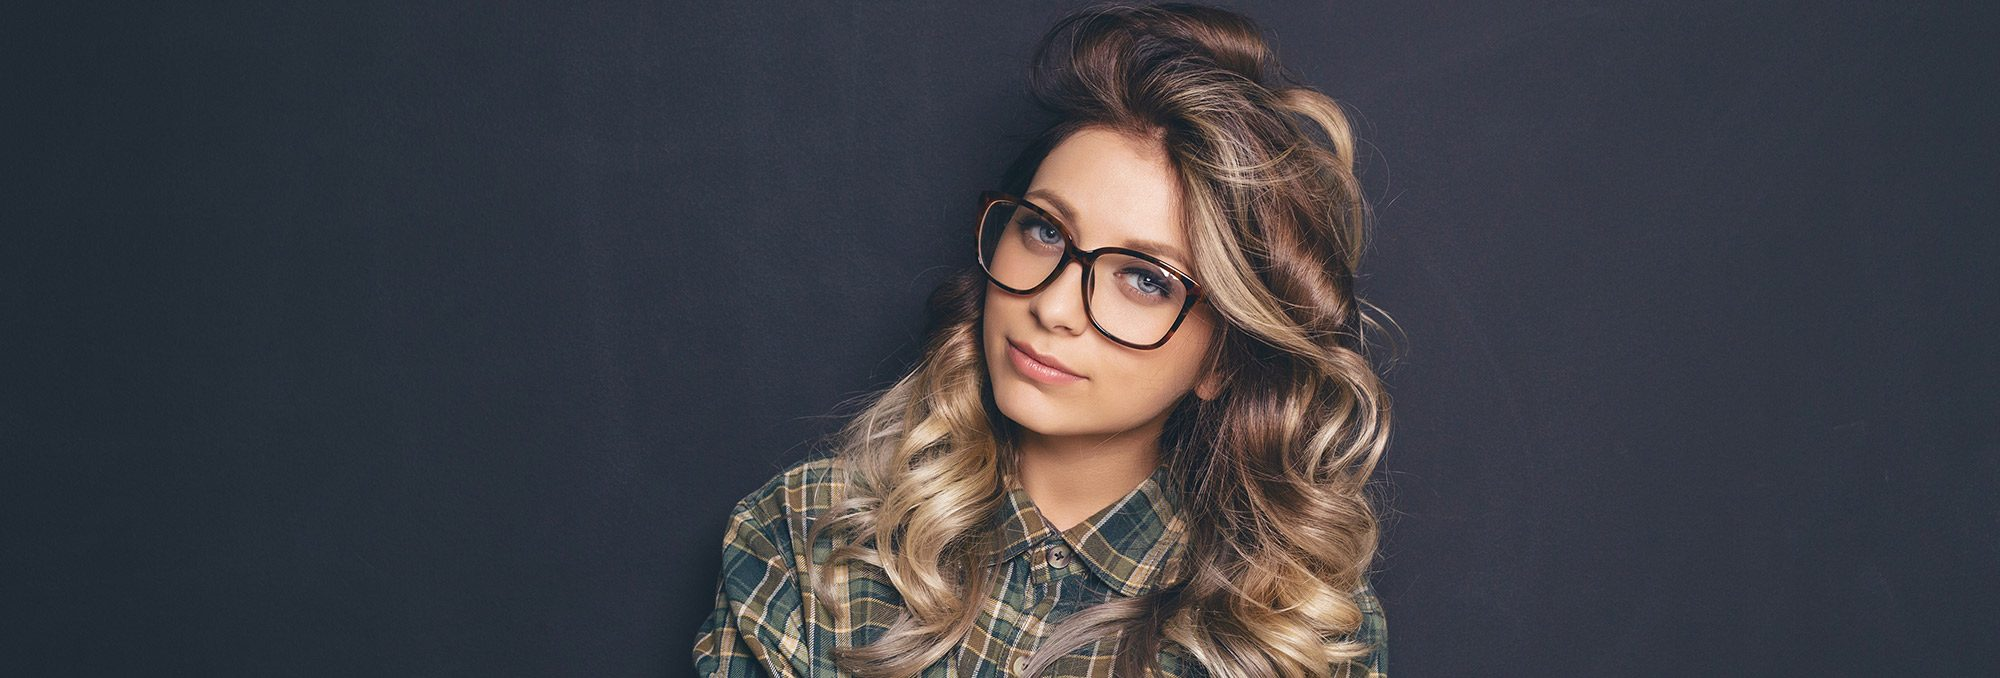 Young woman with plaid shirt and large eyeglasses